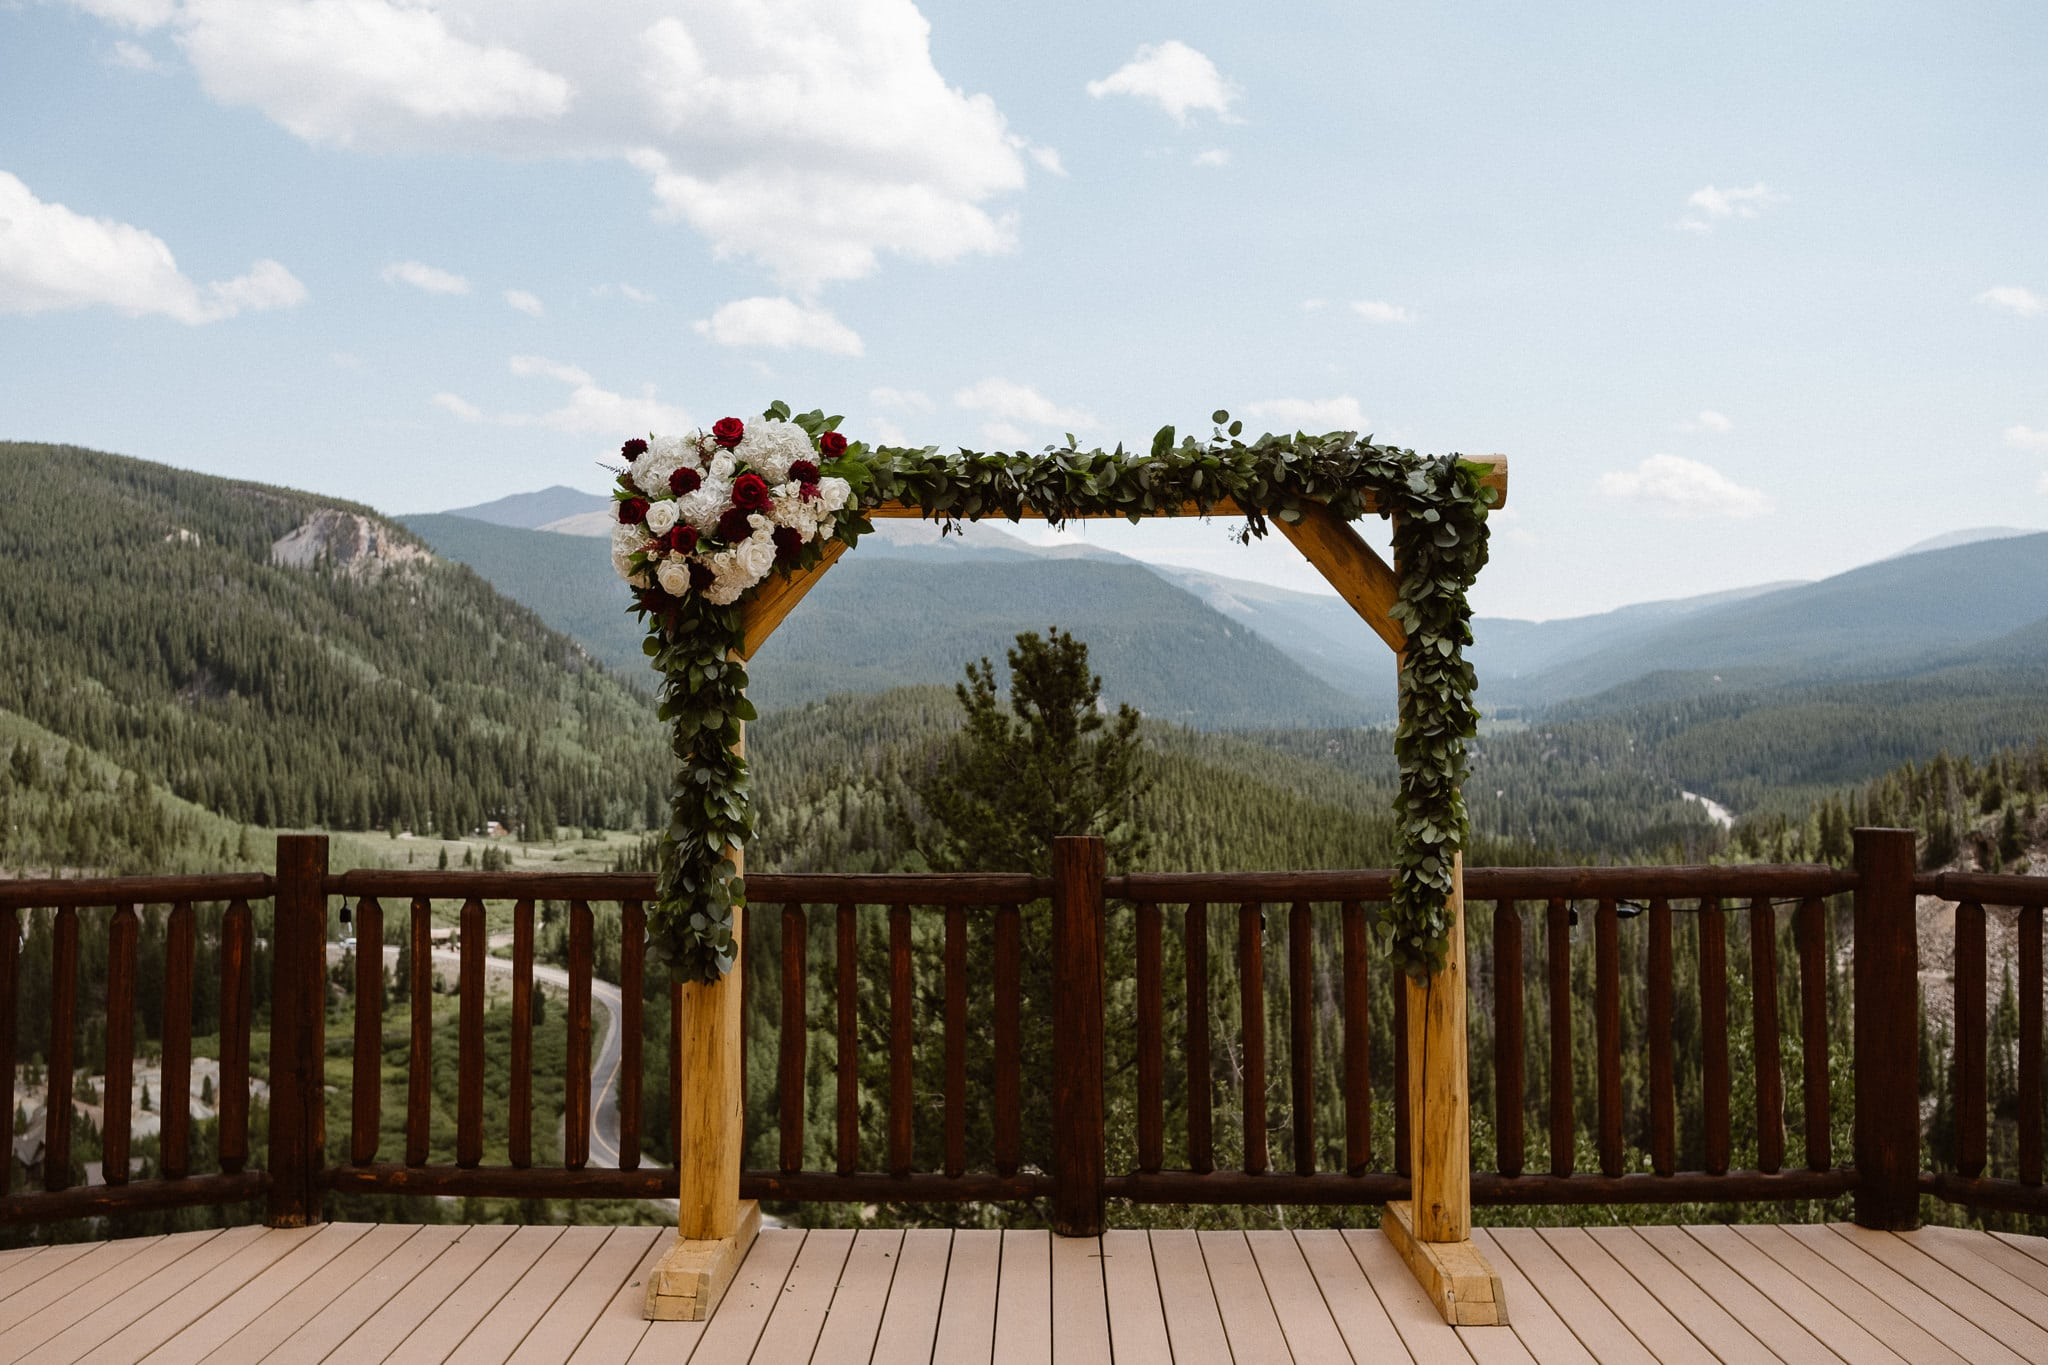 Lodge at Breckenridge Wedding Photographer, Colorado mountain wedding photographer, intimate wedding, wood wedding arch decorated with greenery and white and red roses by Petal & Bean